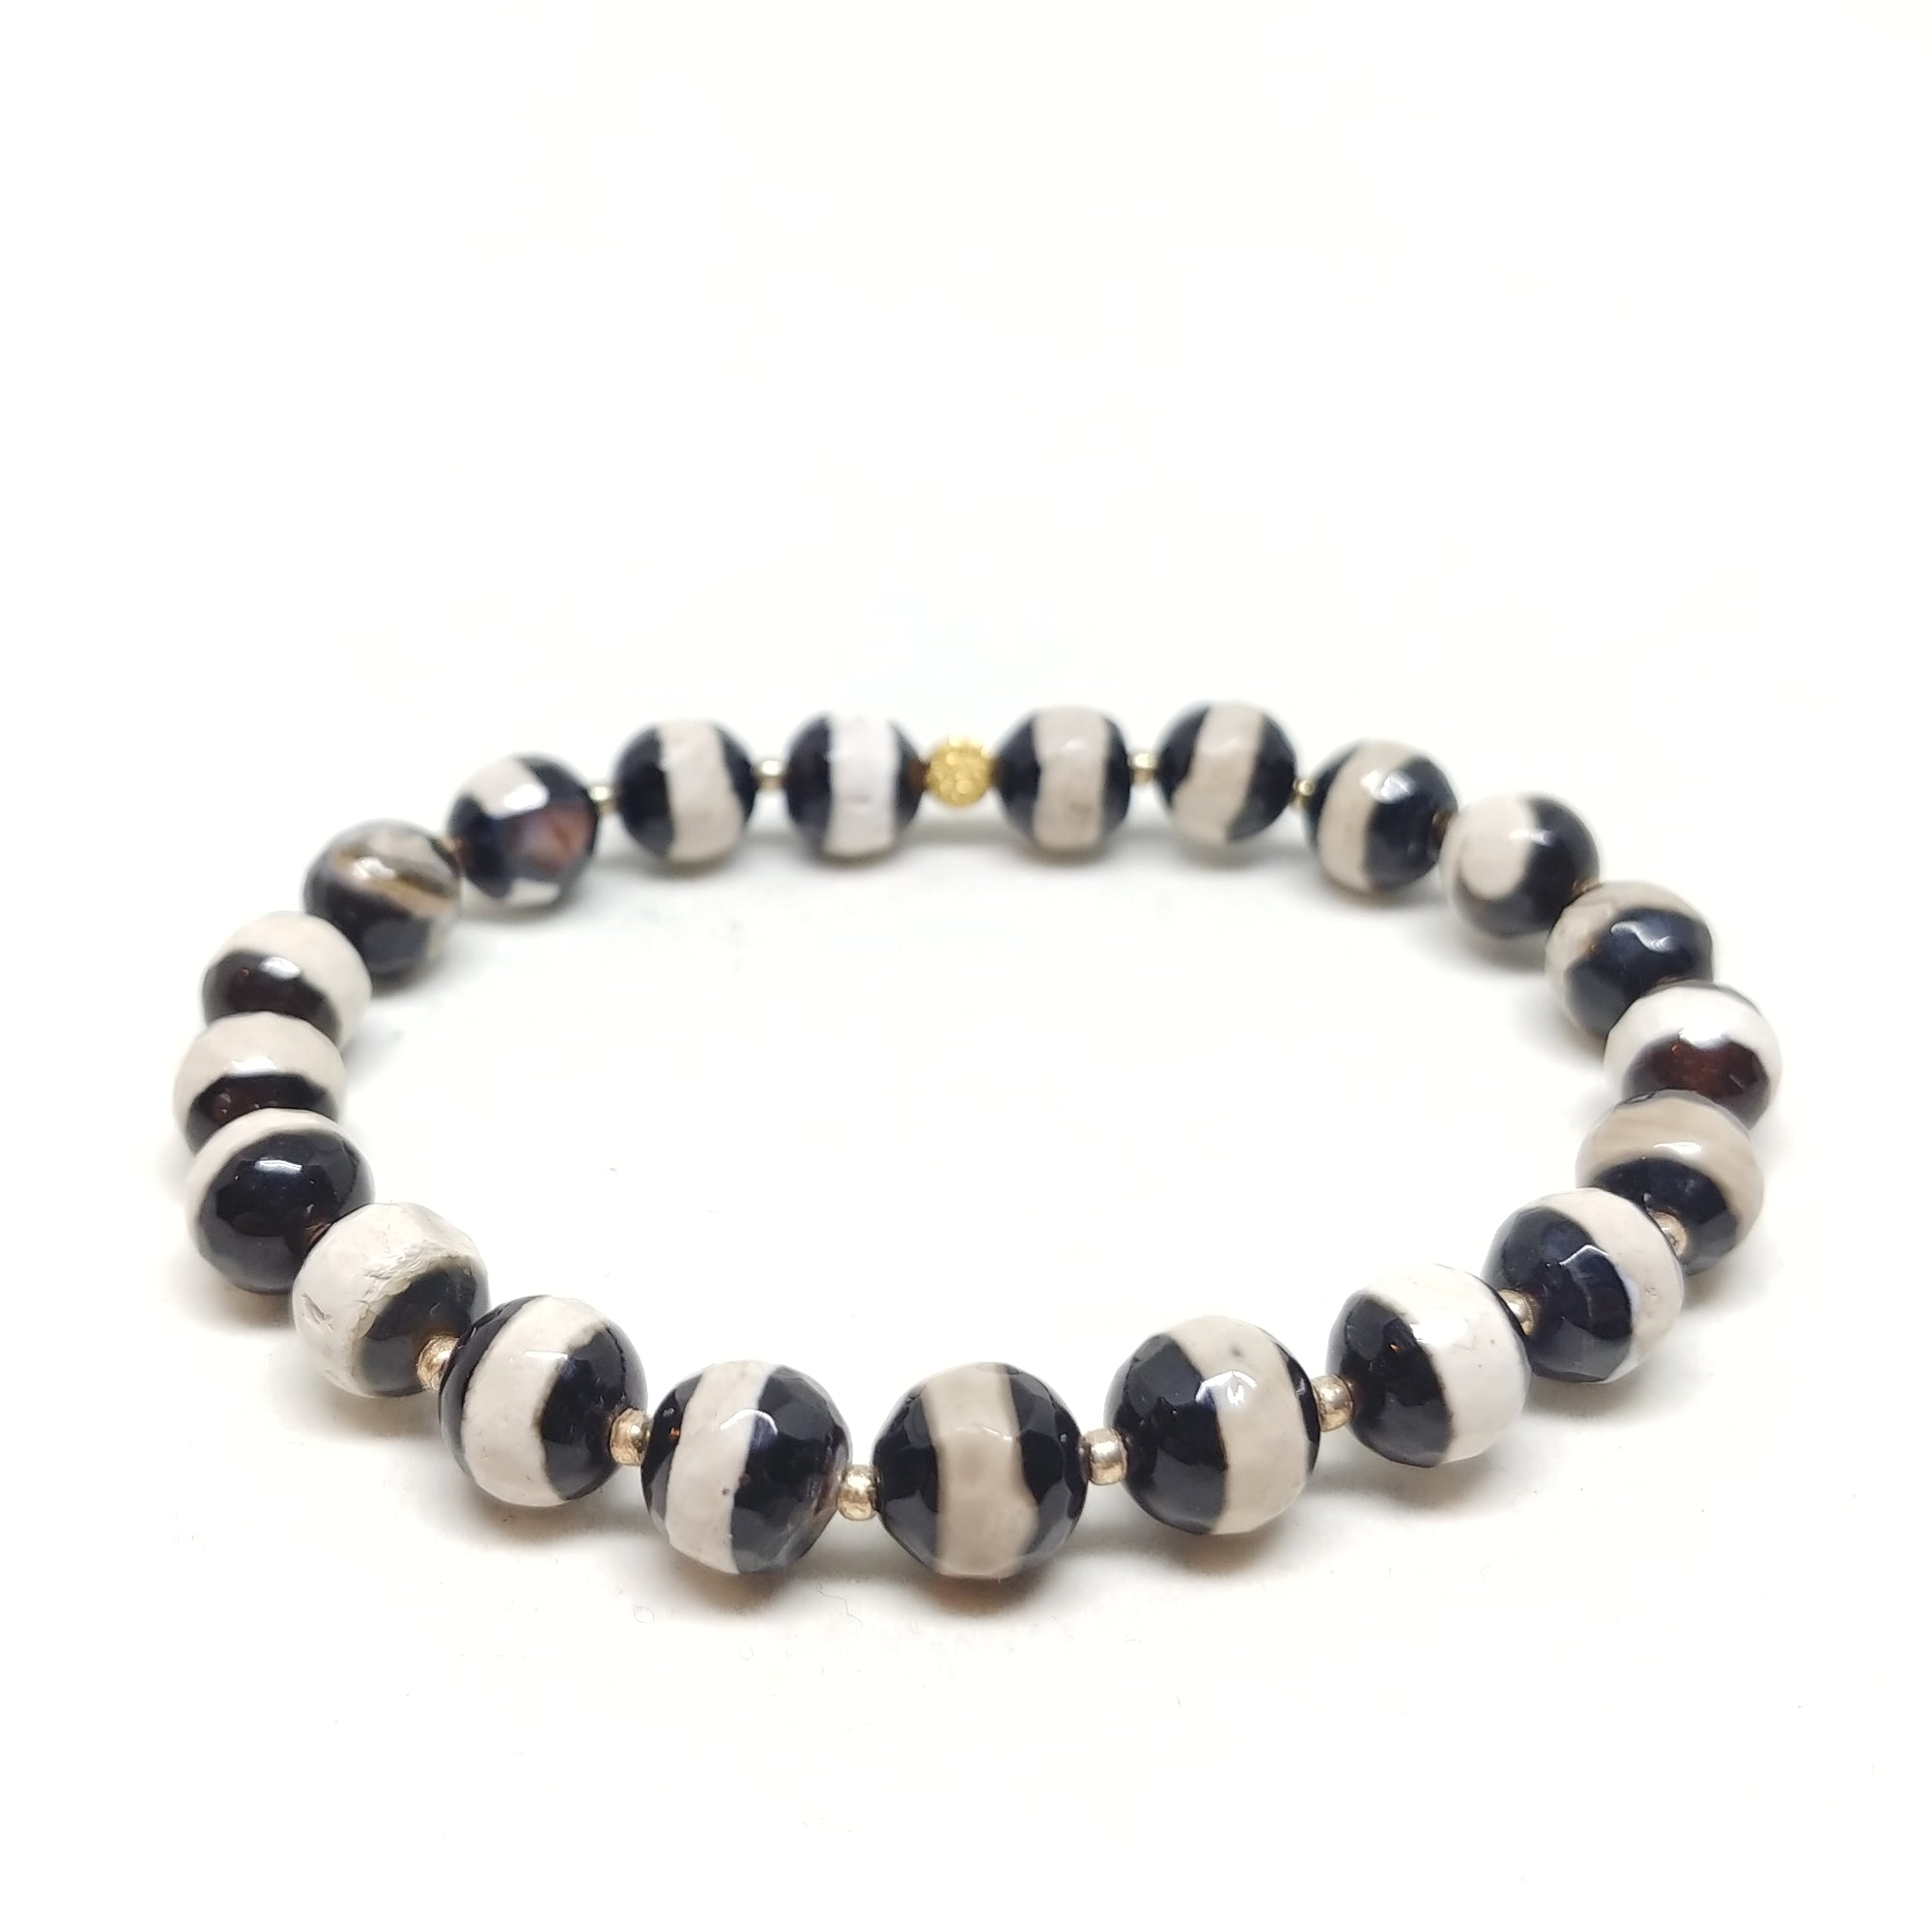 Slot Canyon stretch bracelet, black and white dzi agate beads with gold spacer beads, 7 1/2""